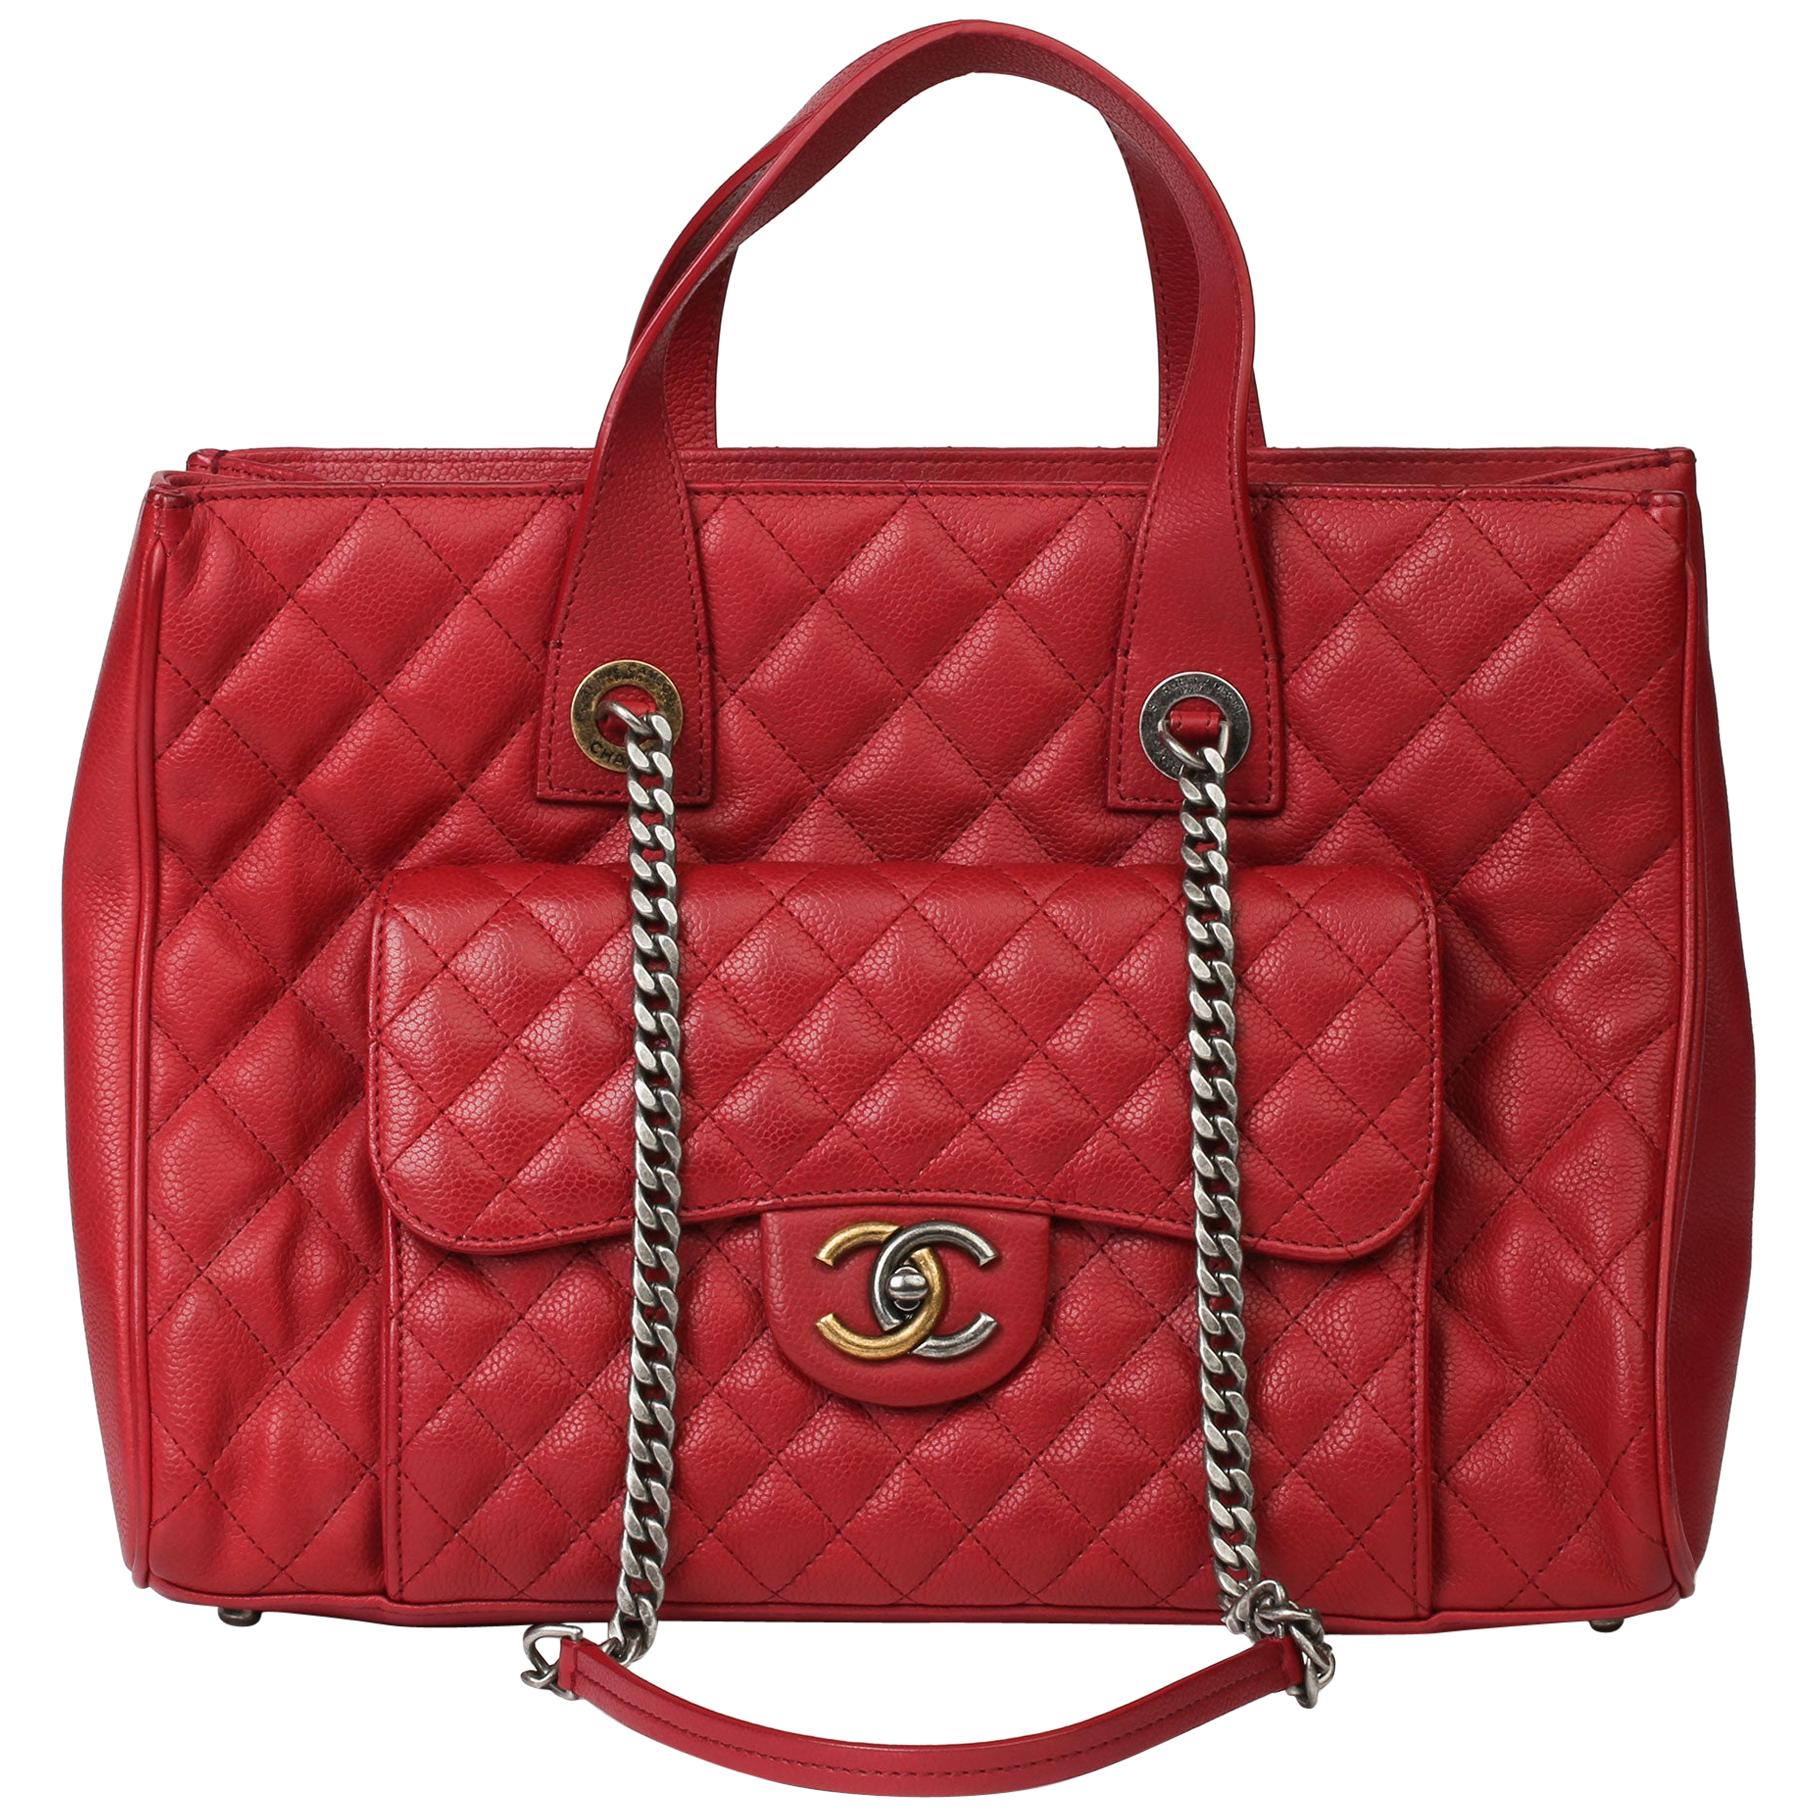 2017 Chanel Burgundy Quilted Caviar Leather Timeless Shoulder Tote